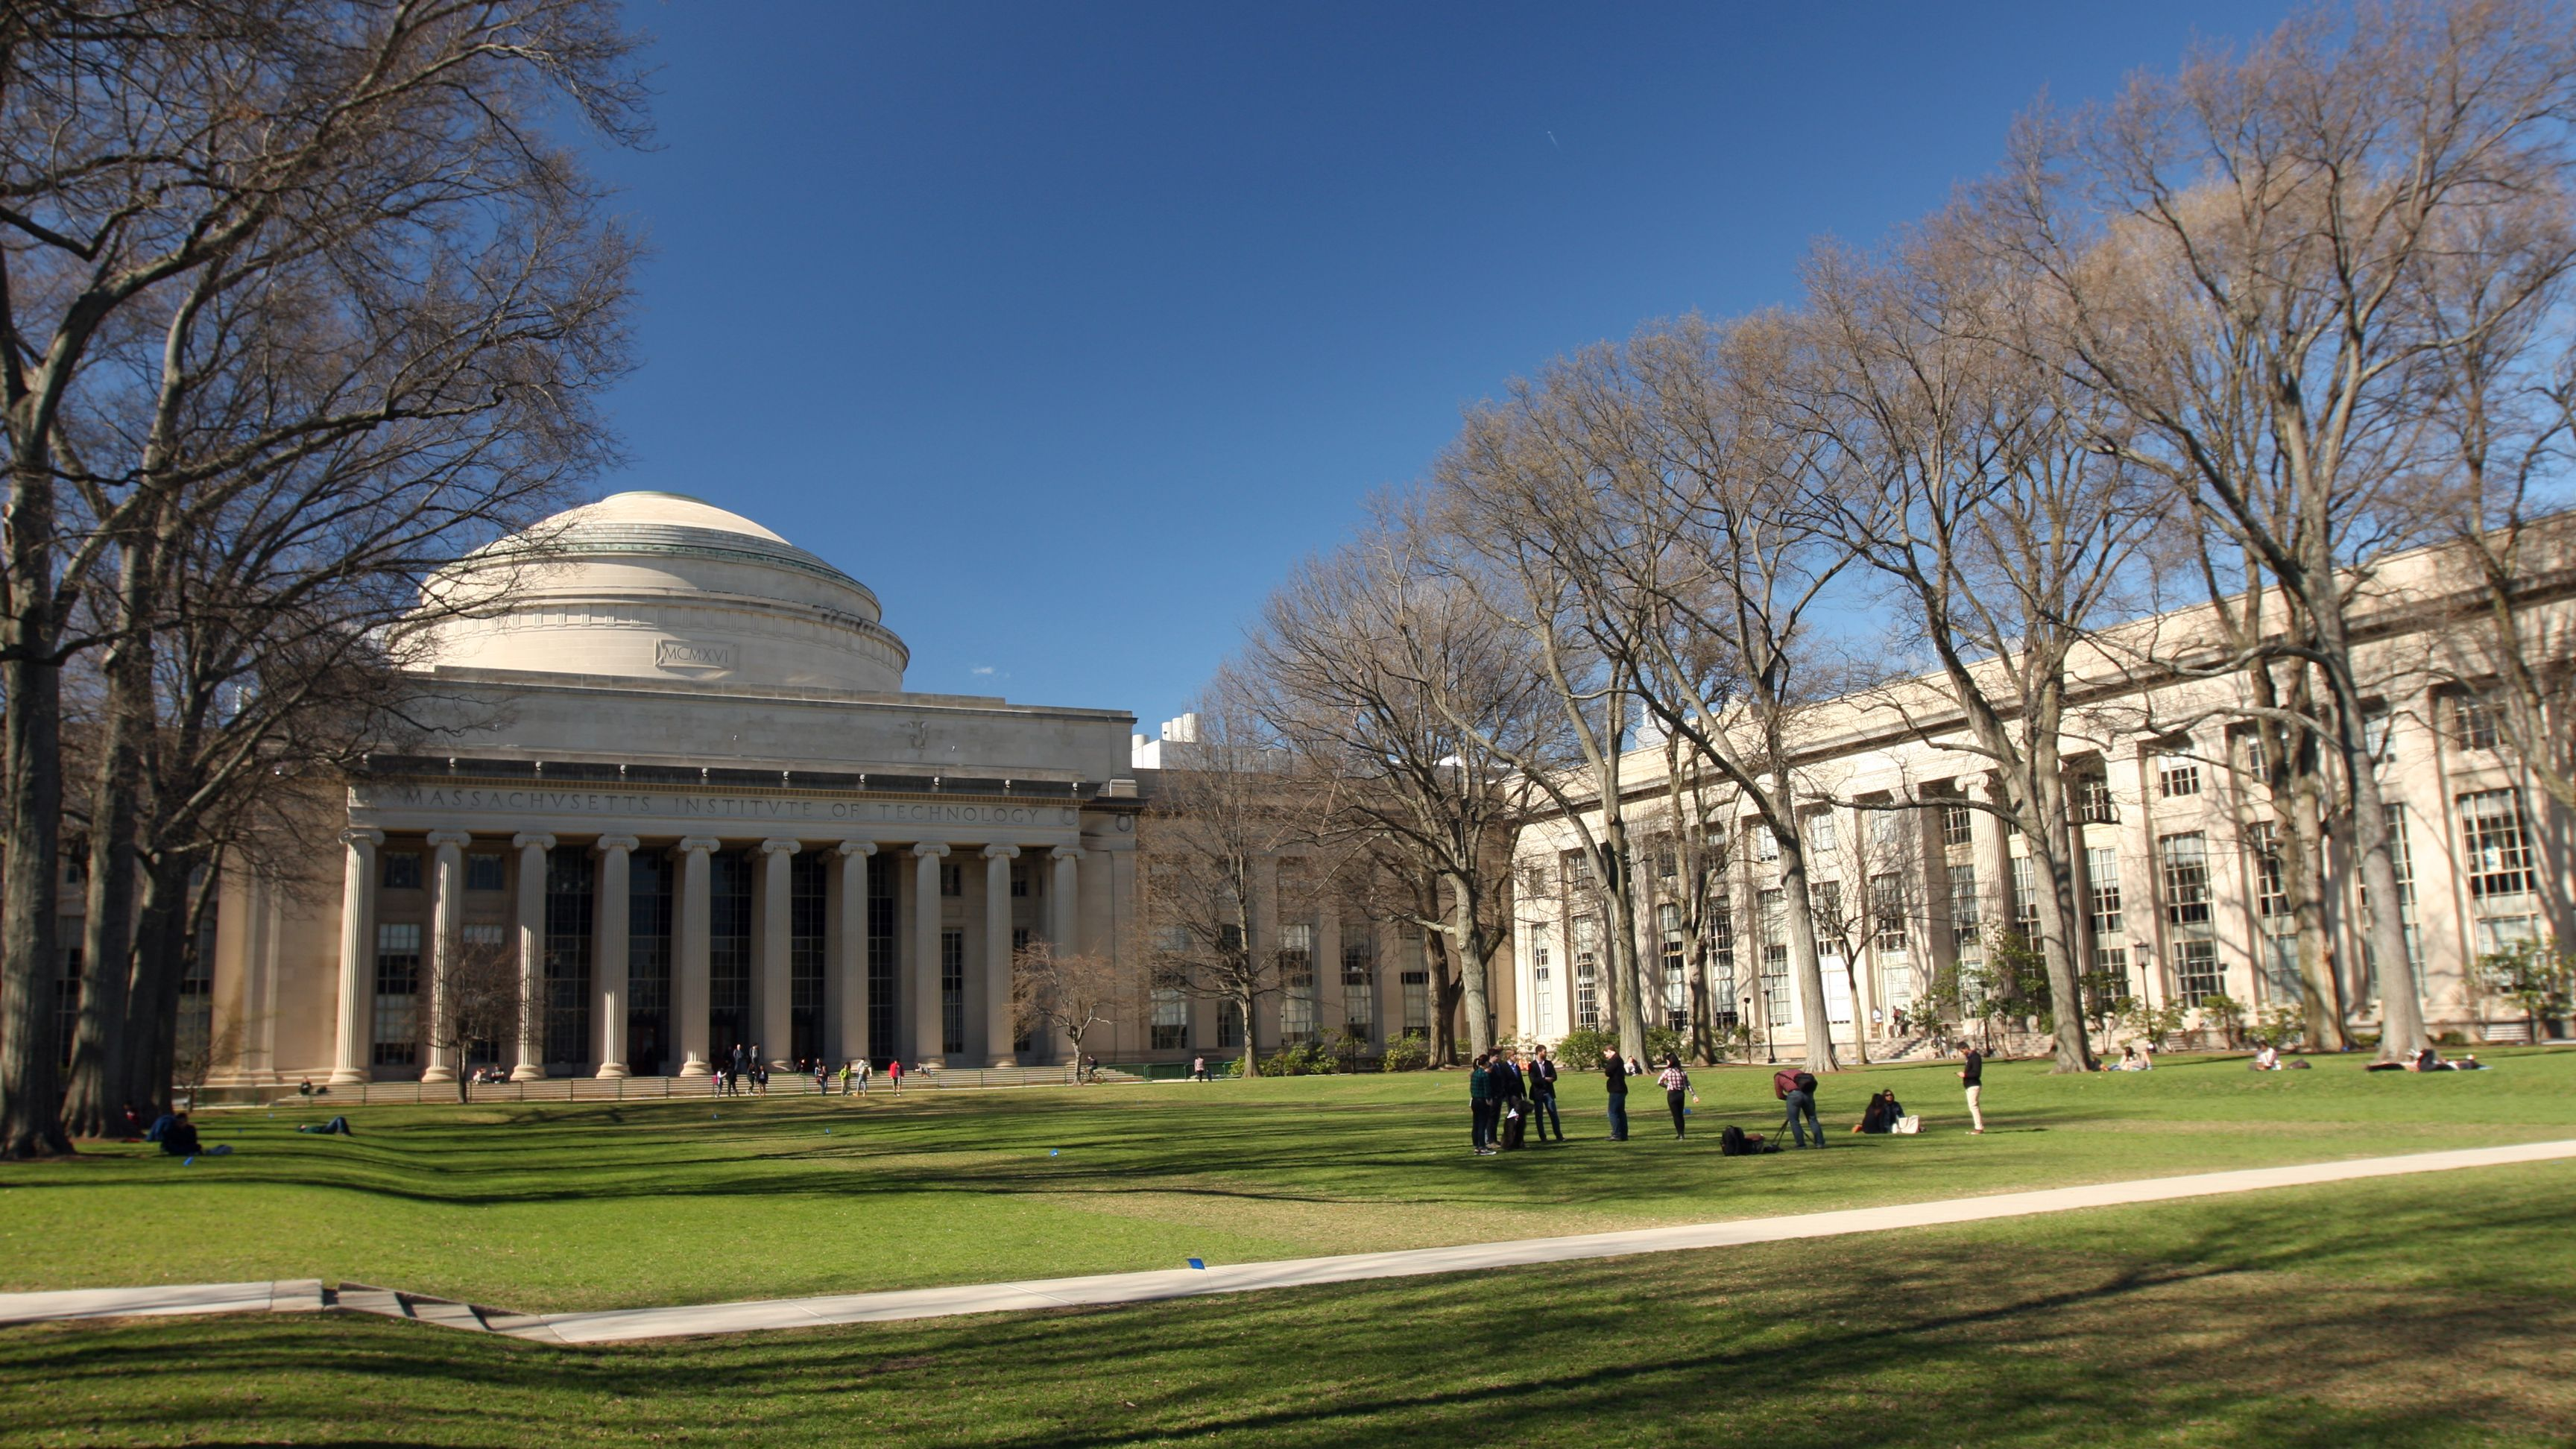 Pictures Of The Massachusetts Institute Of Technology